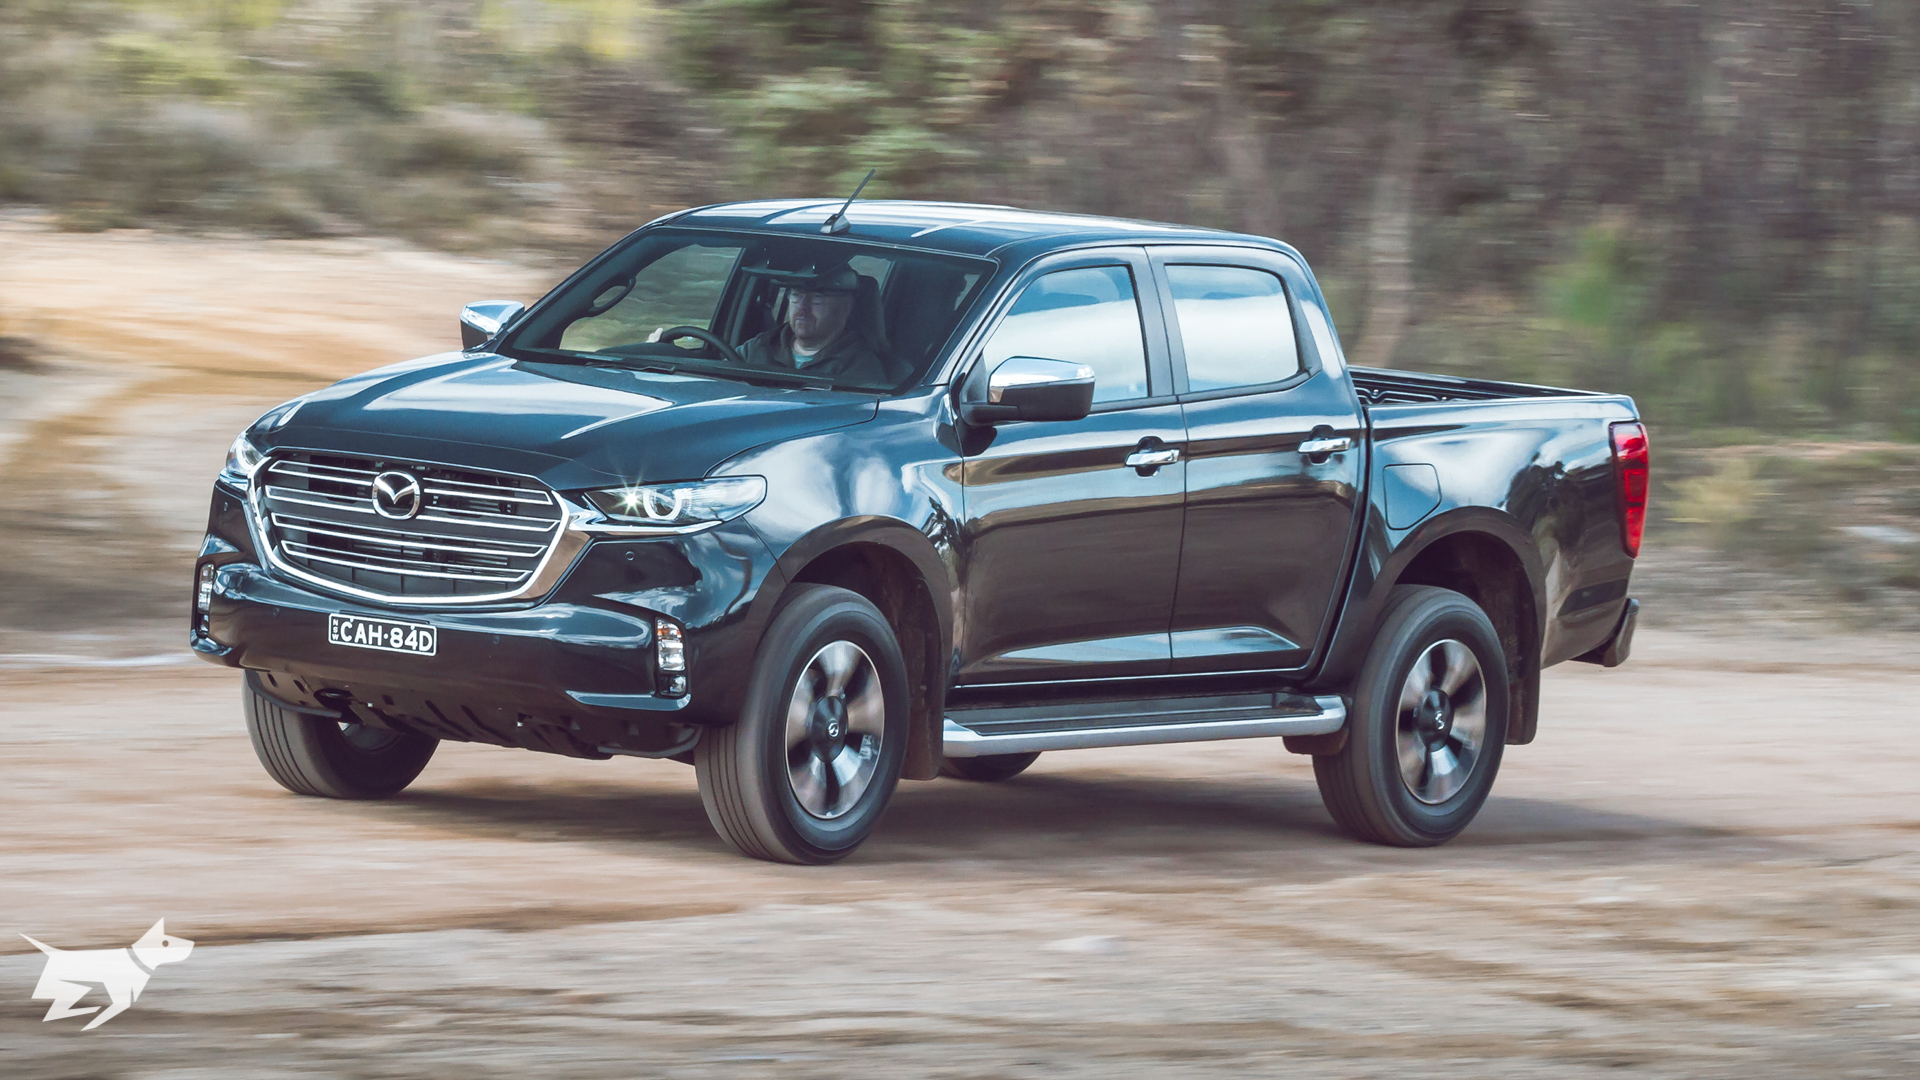 The Mazda BT-50 2021 driving off road